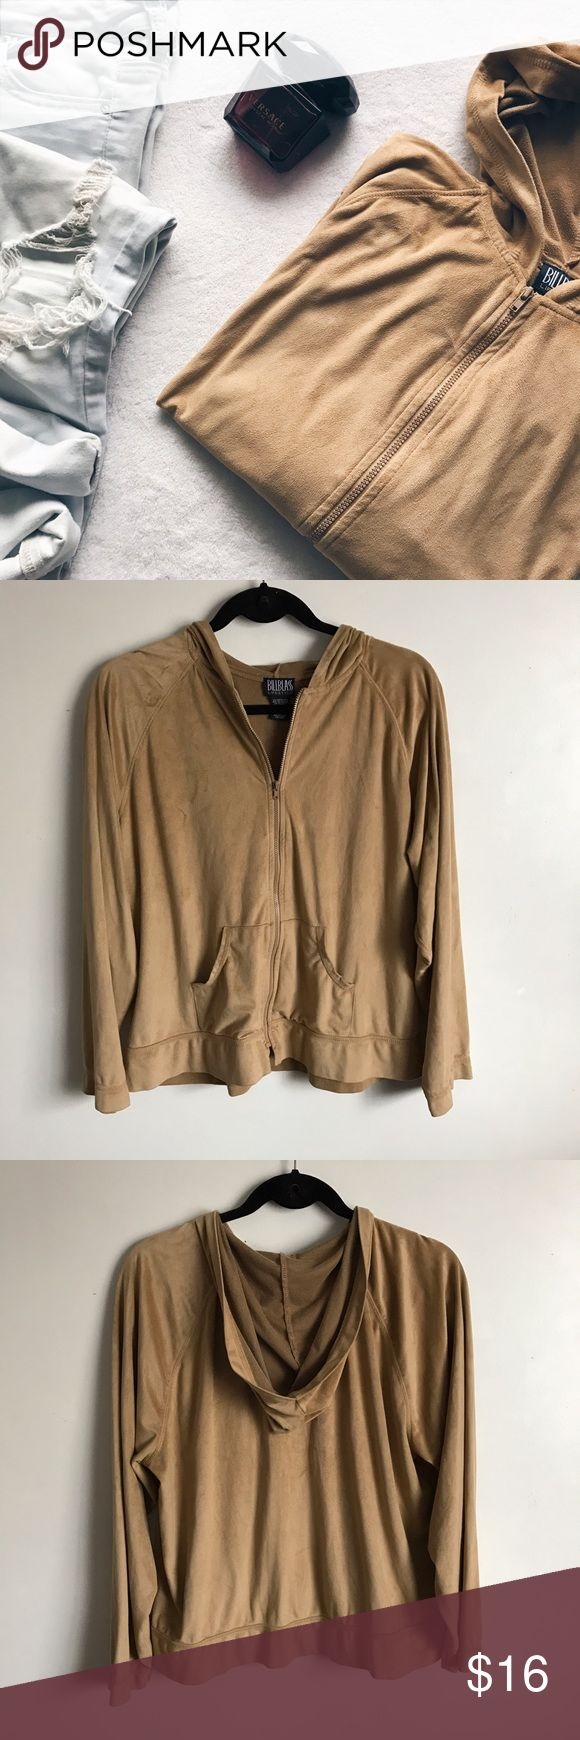 Suede Zip Up Sweatshirt in Nude/Camel Size XL. I'd say it's more of a large.  (I'm usually a size small/medium and that's how it fits me) Great condition, only flaw is the little stain on the bottom of the sleeve (see last pic). Supper cute color, goes with basically anything 😊. Sleeves are relaxed. No stretch band. Feel free to ask any questions😊 🔸let me know if you'd like some measurements, I'd be happy to help with that 🔸reasonable offers are welcome in my closet 🤝Bundle n Save📦…